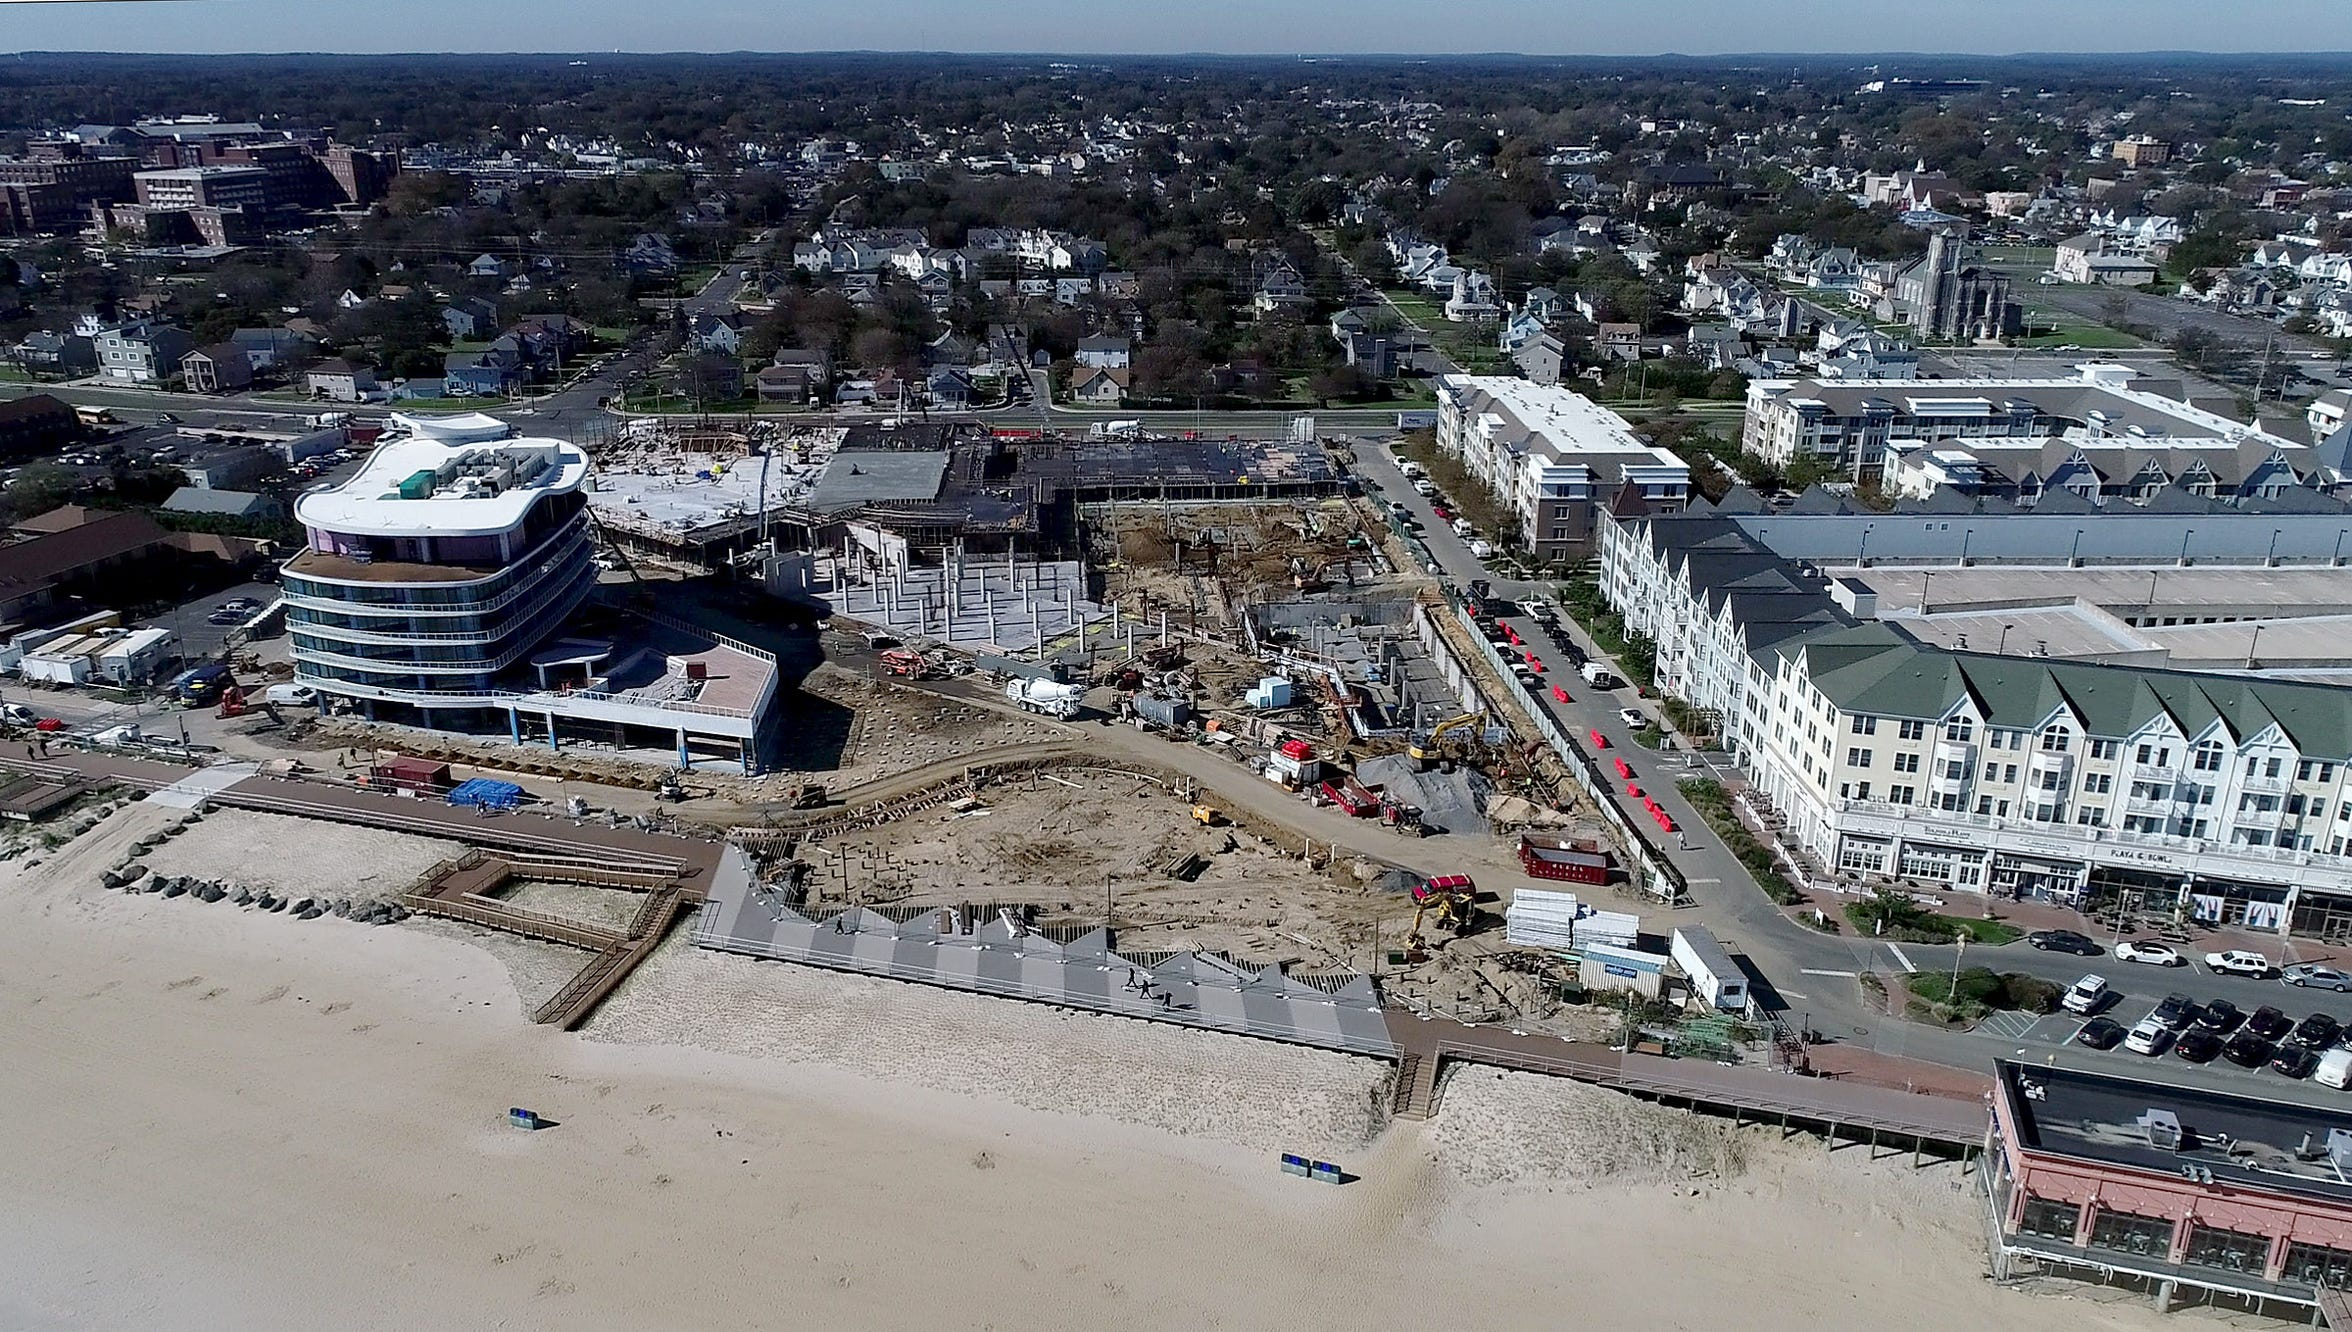 Development continues along the Long Branch coastline, south of Pier Village, shown Friday, October 19, 2018.